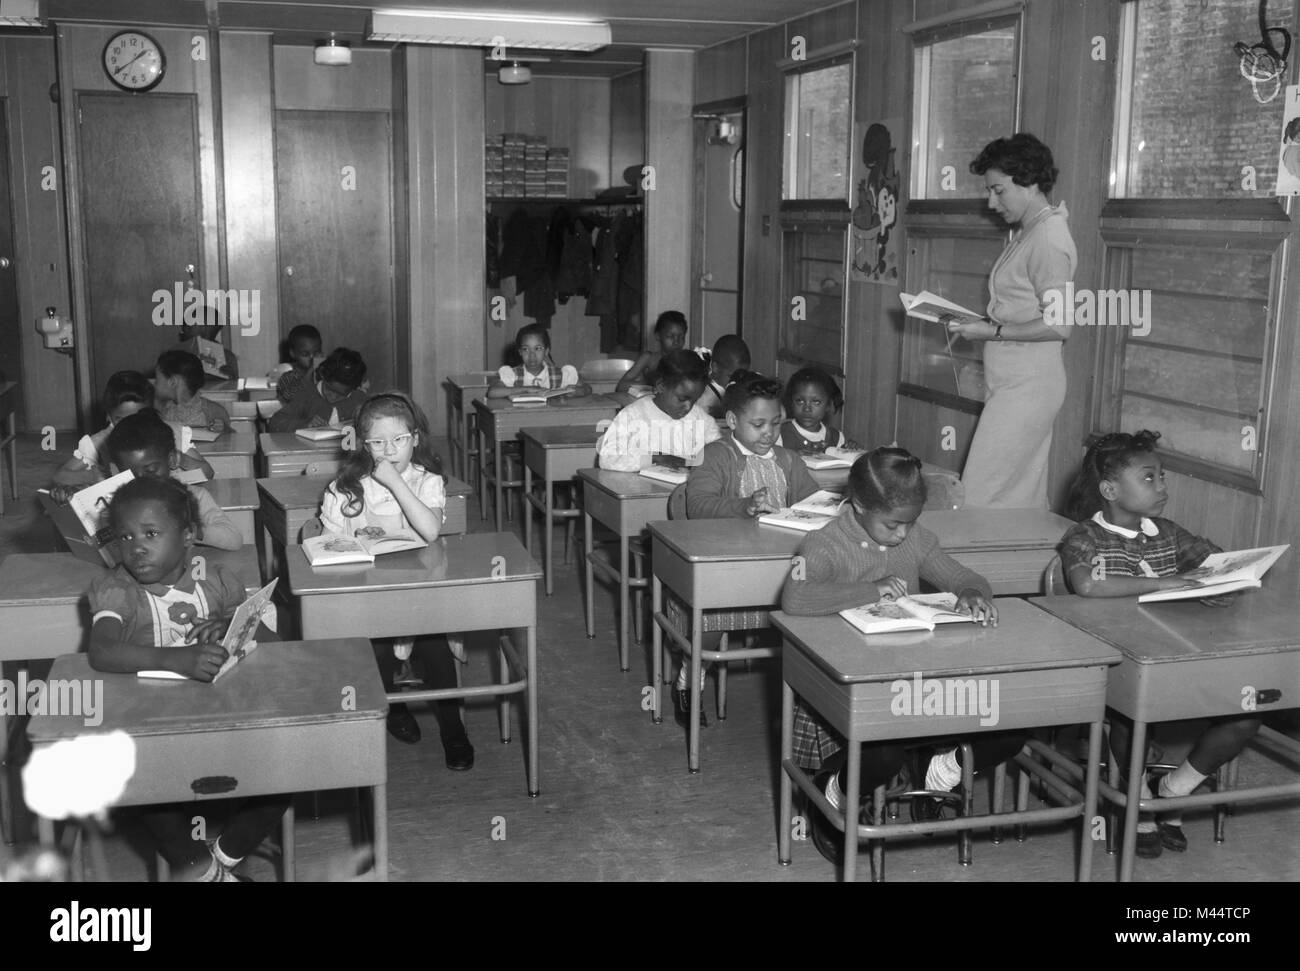 Classroom on Chicago's South Side, ca. 1961. - Stock Image